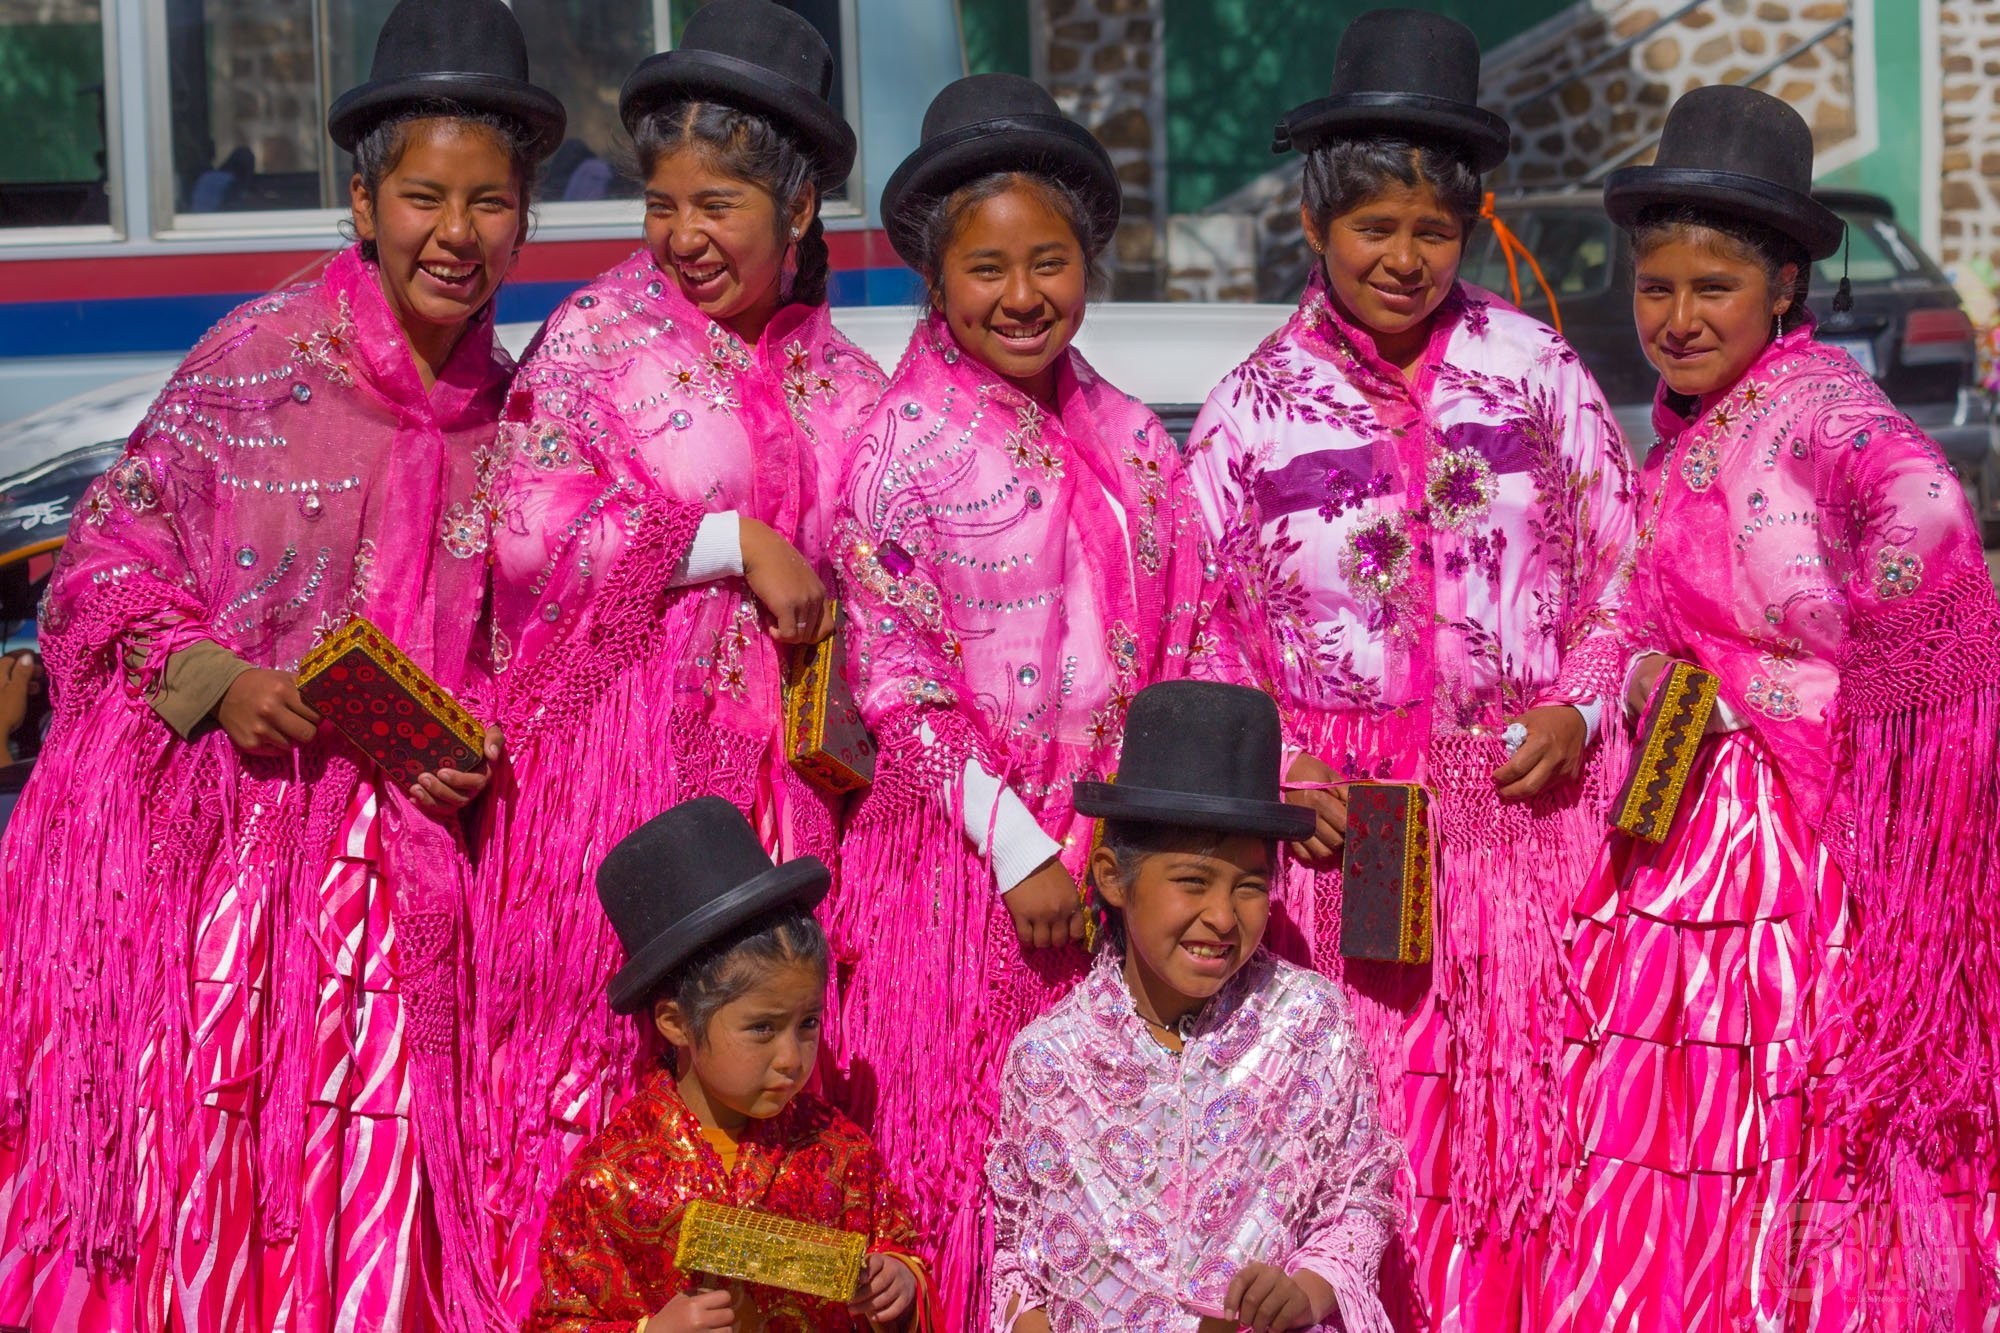 Bolivian Cholas with traditional costumes, Sucre Bolivia